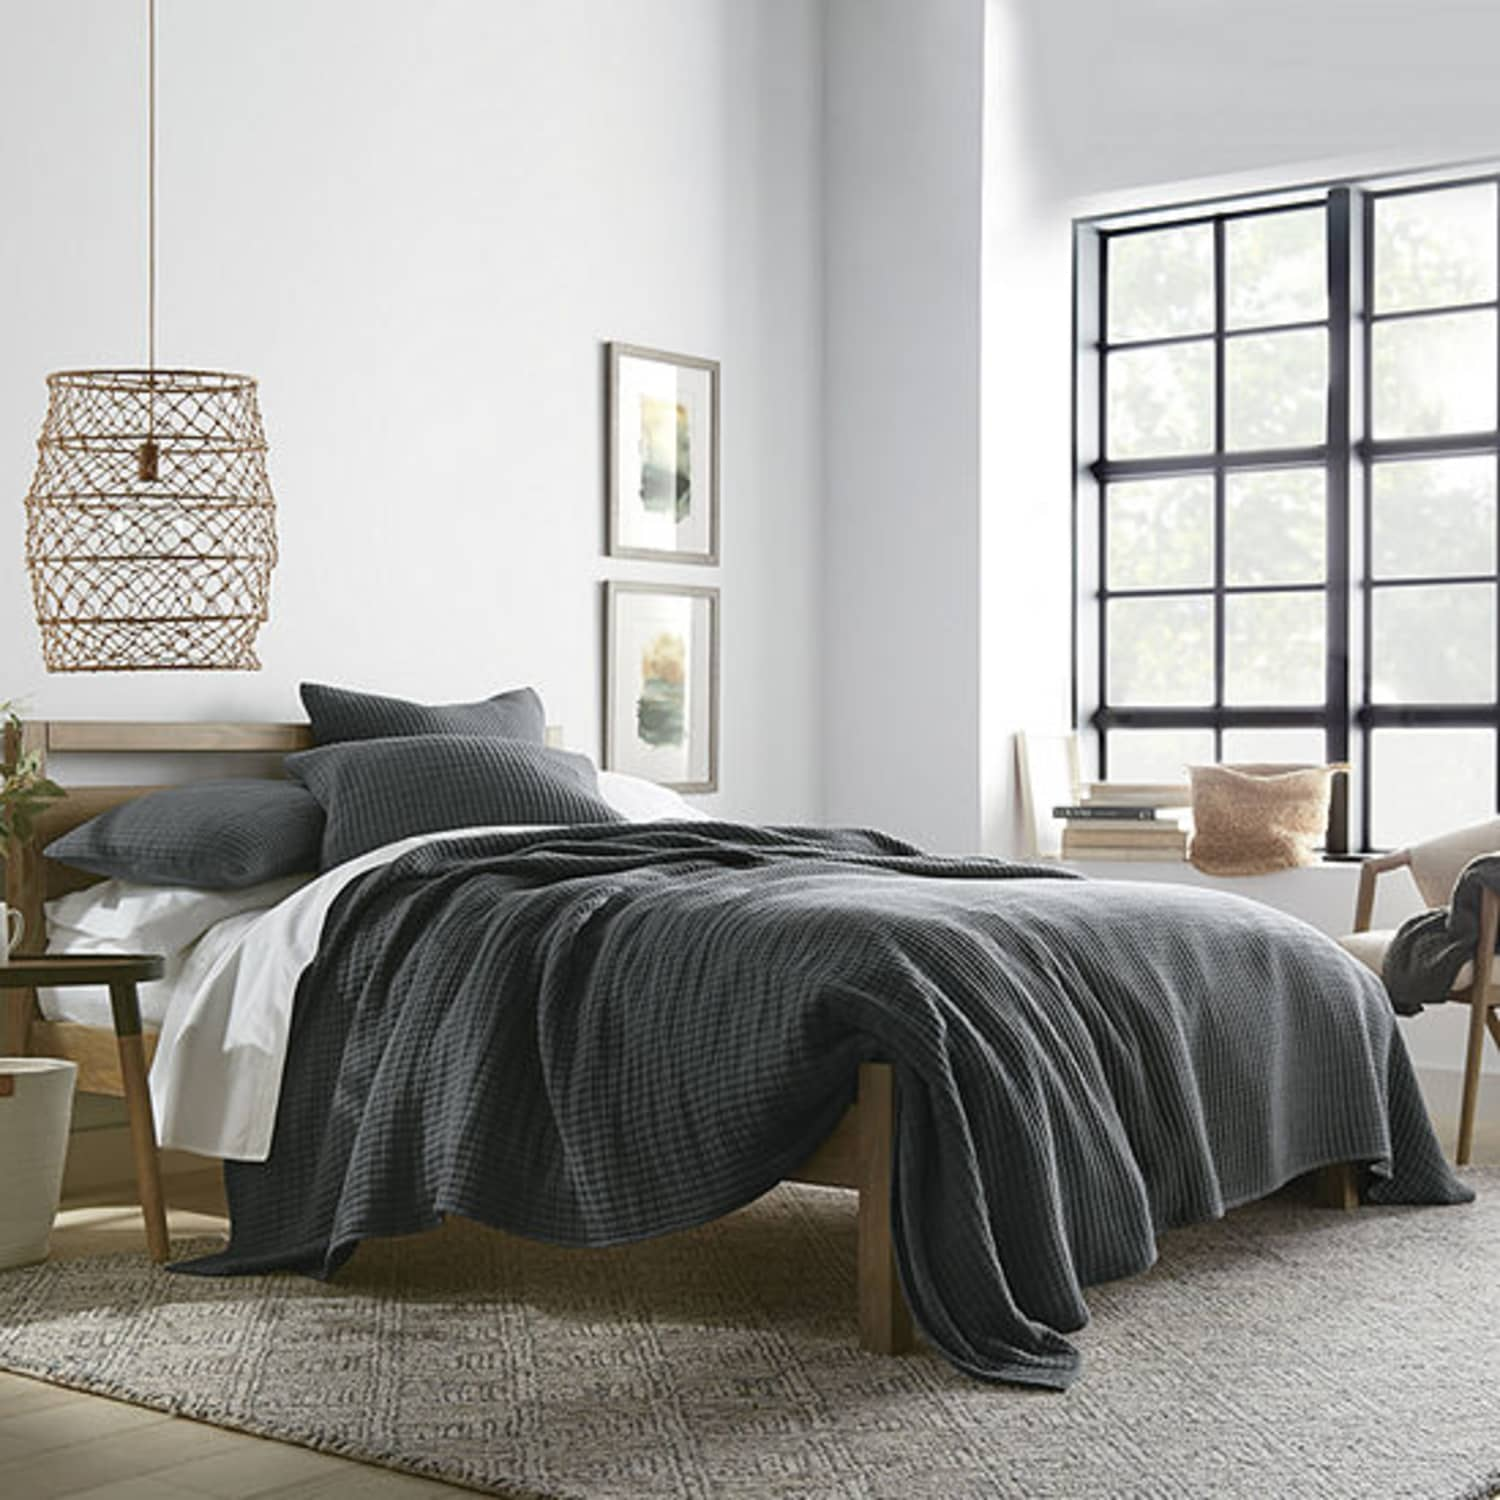 This New Bedding Brand is Like if Parachute and Magnolia Home Had a Baby